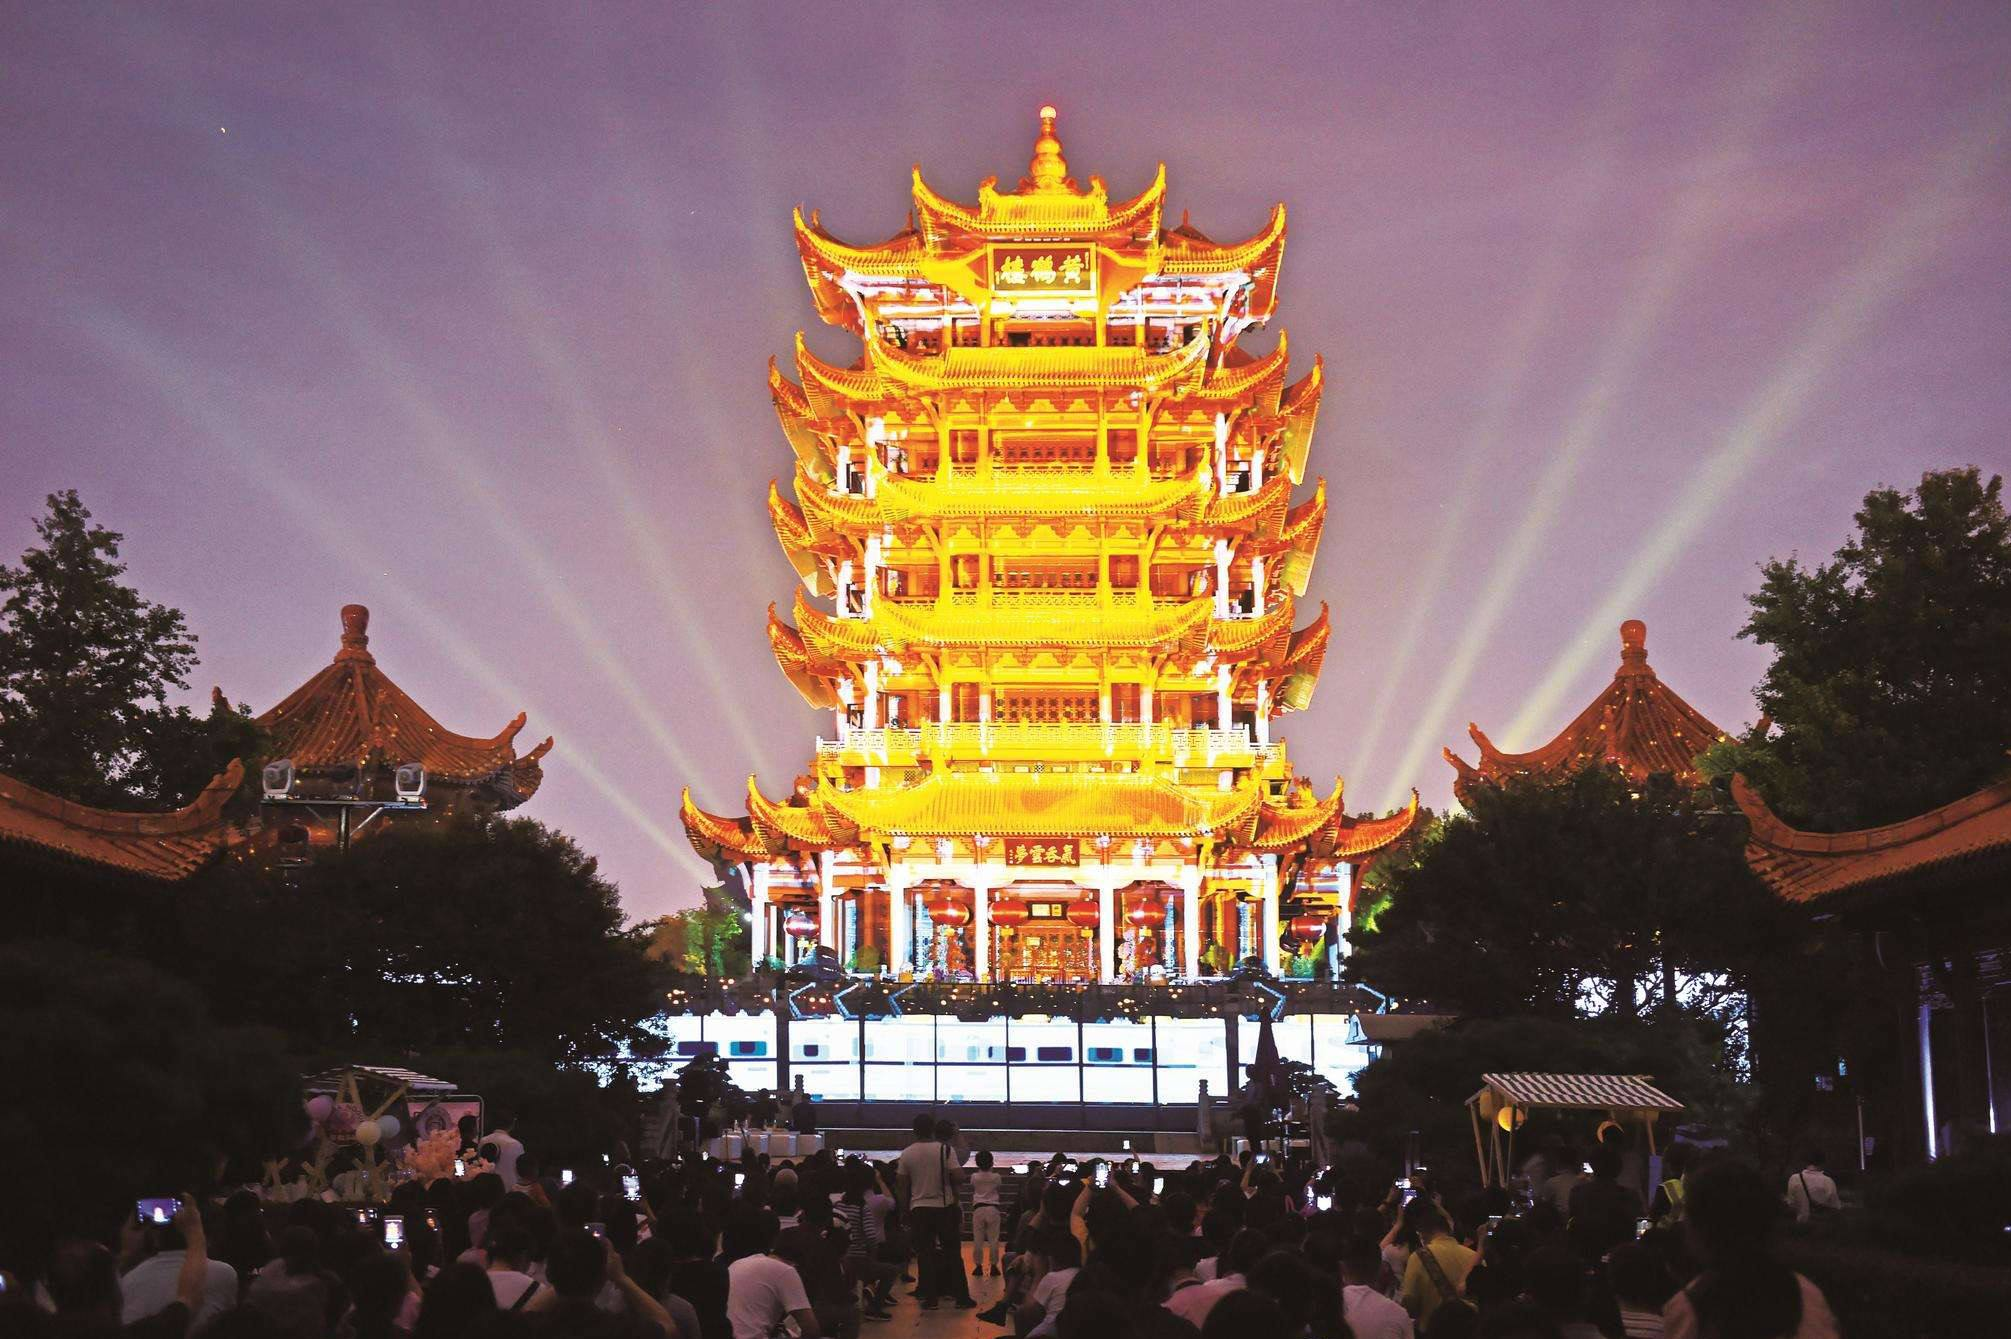 Wuhan, China Pulls Nearly 19 Million Tourists During Golden Week travel